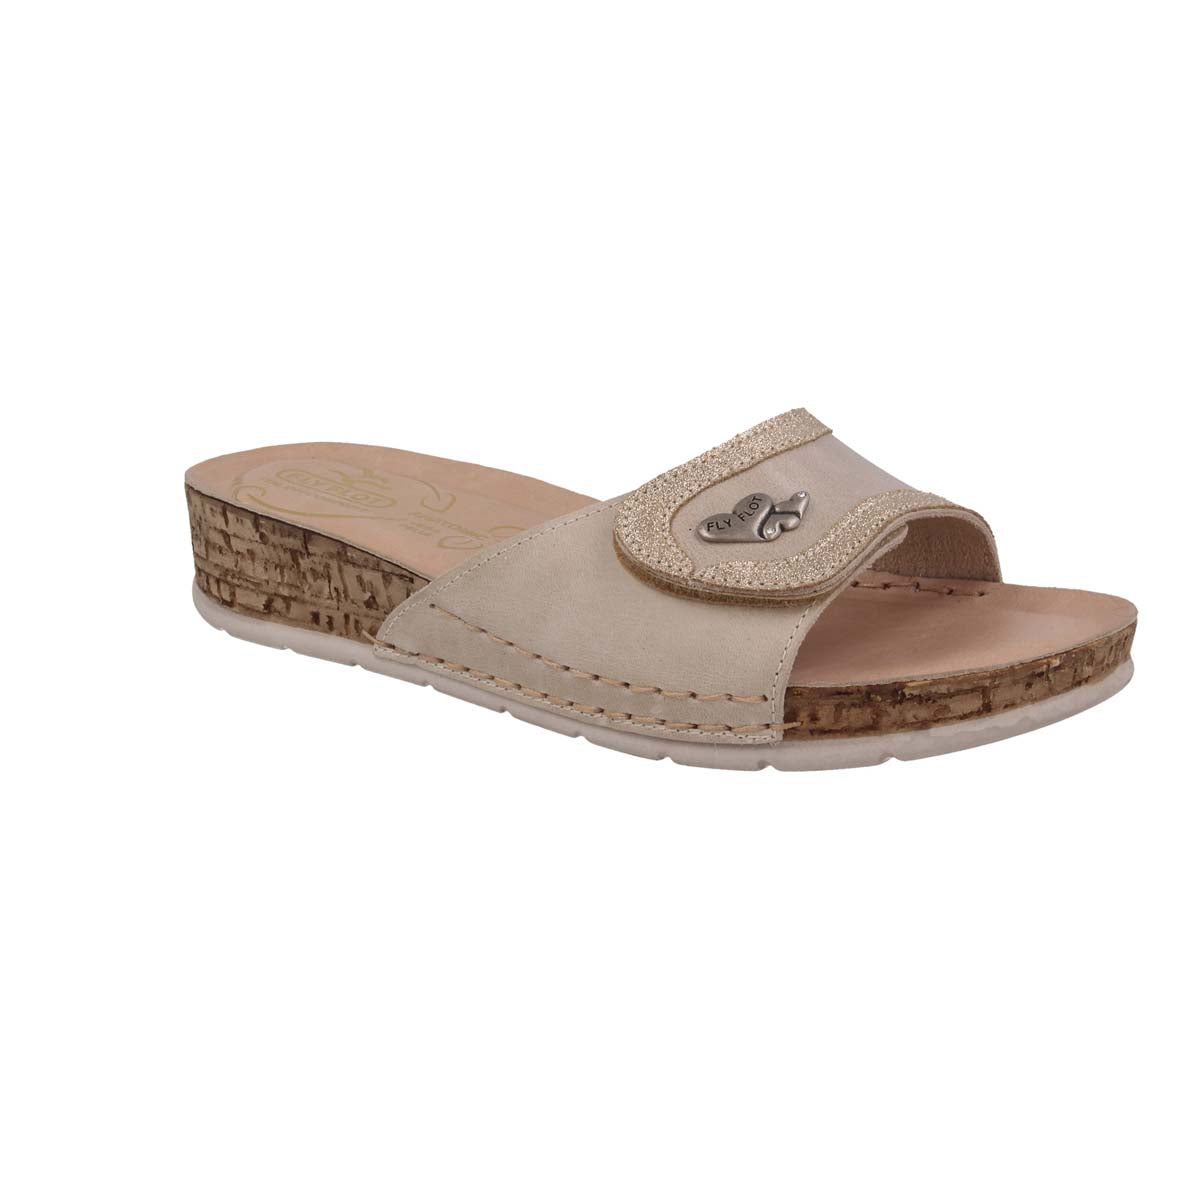 See photos Leather Woman Slipper Beige (15A40GG)